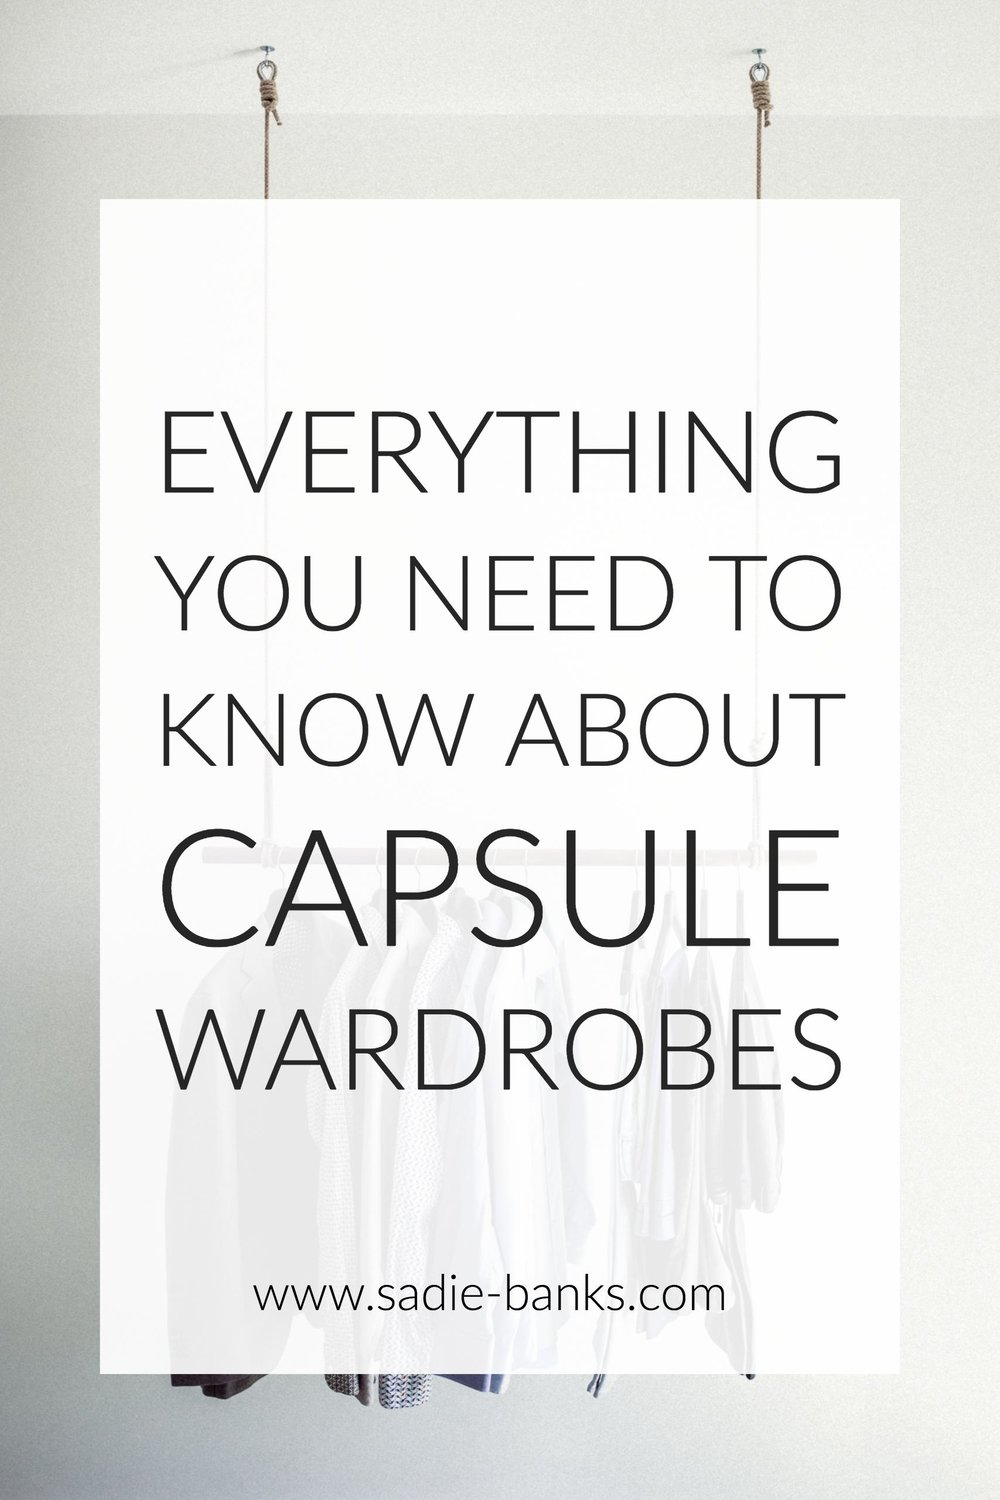 Capsule Wardrobe | Capsule Wardrobes how to build a | Capsule Wardrobe work | Sadie Banks Photography